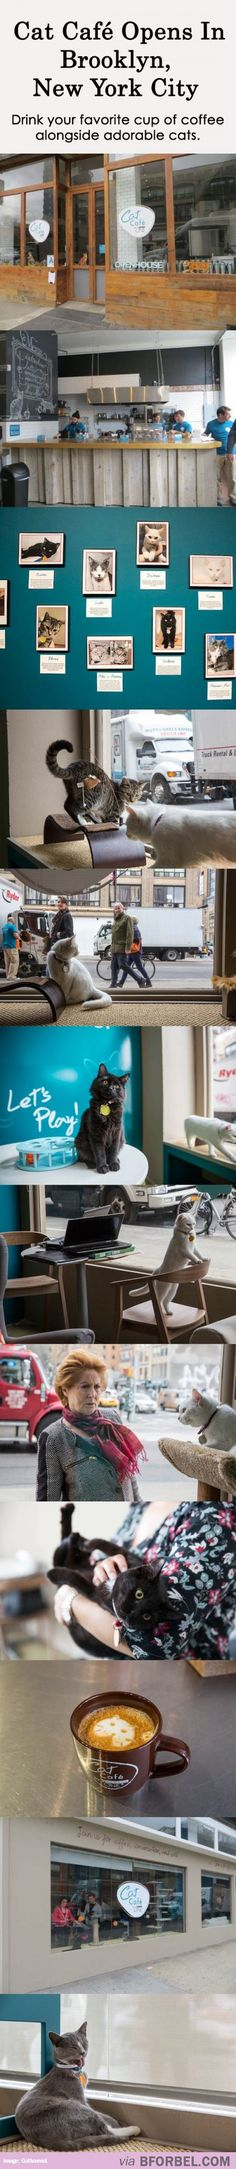 Brooklyn's First Adorable Cat Cafe… That is AWESOME!!! I will go there. I will work there. I will die happy there.